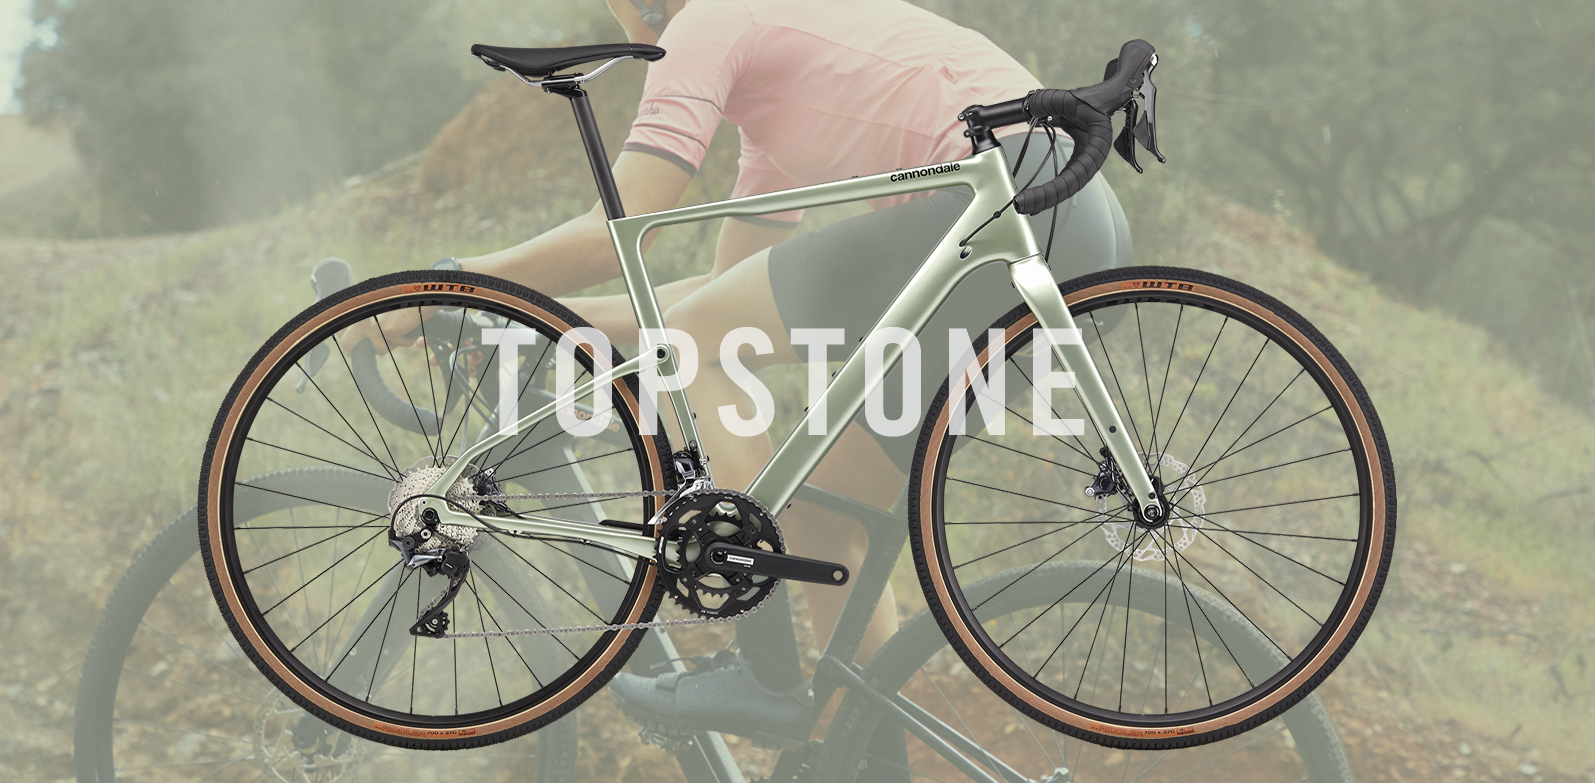 The 2020 Cannondale Topstone Carbon